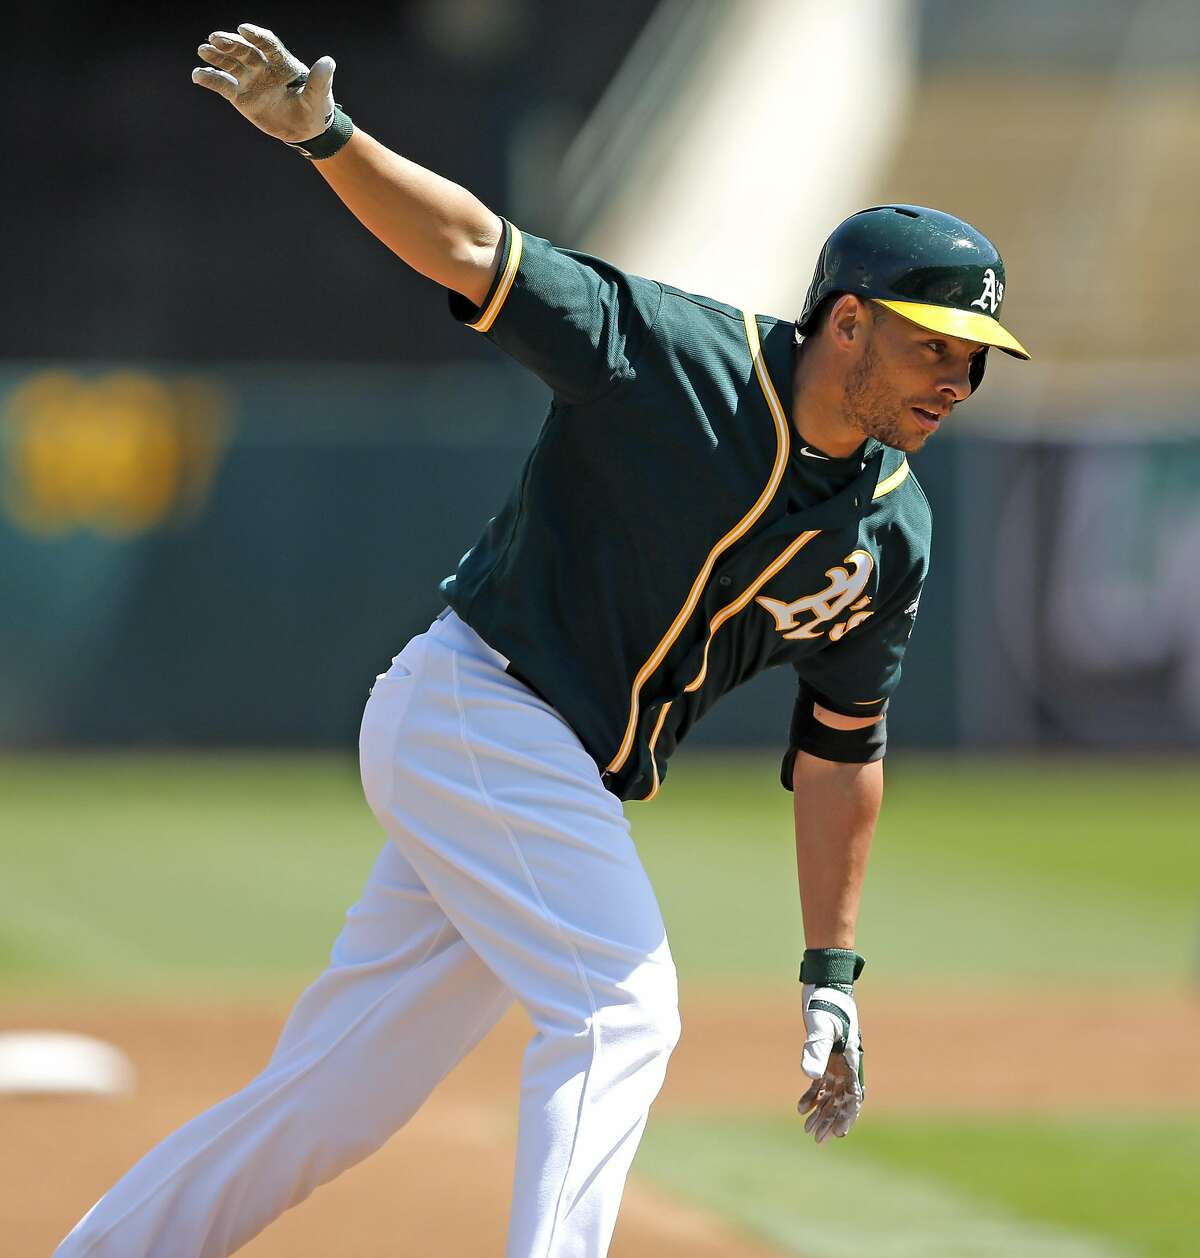 Oakland Athletics' Danny Valencia rounds the bases after his 2-run home run against Los Angeles Angels during MLB game at Oakland Coliseum in Oakland, Calif., on Monday, September 5, 2016.